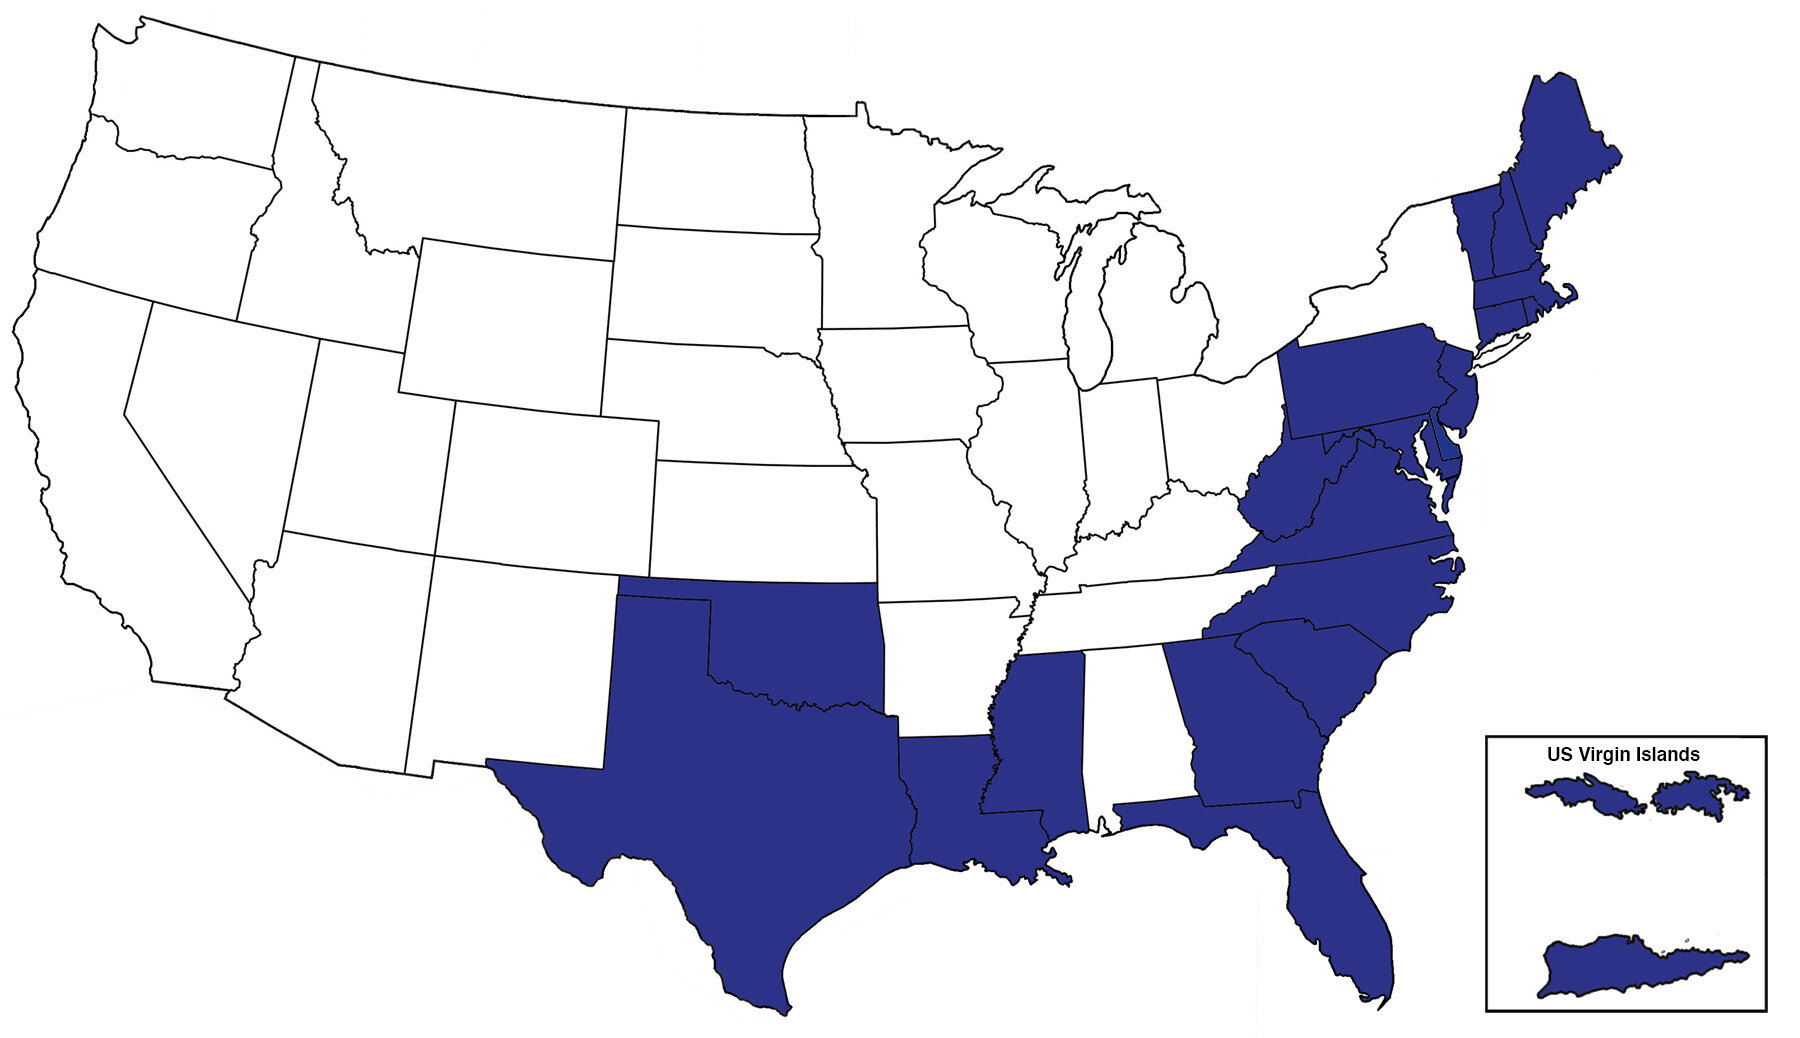 Professional Loss Adjusters Service Map